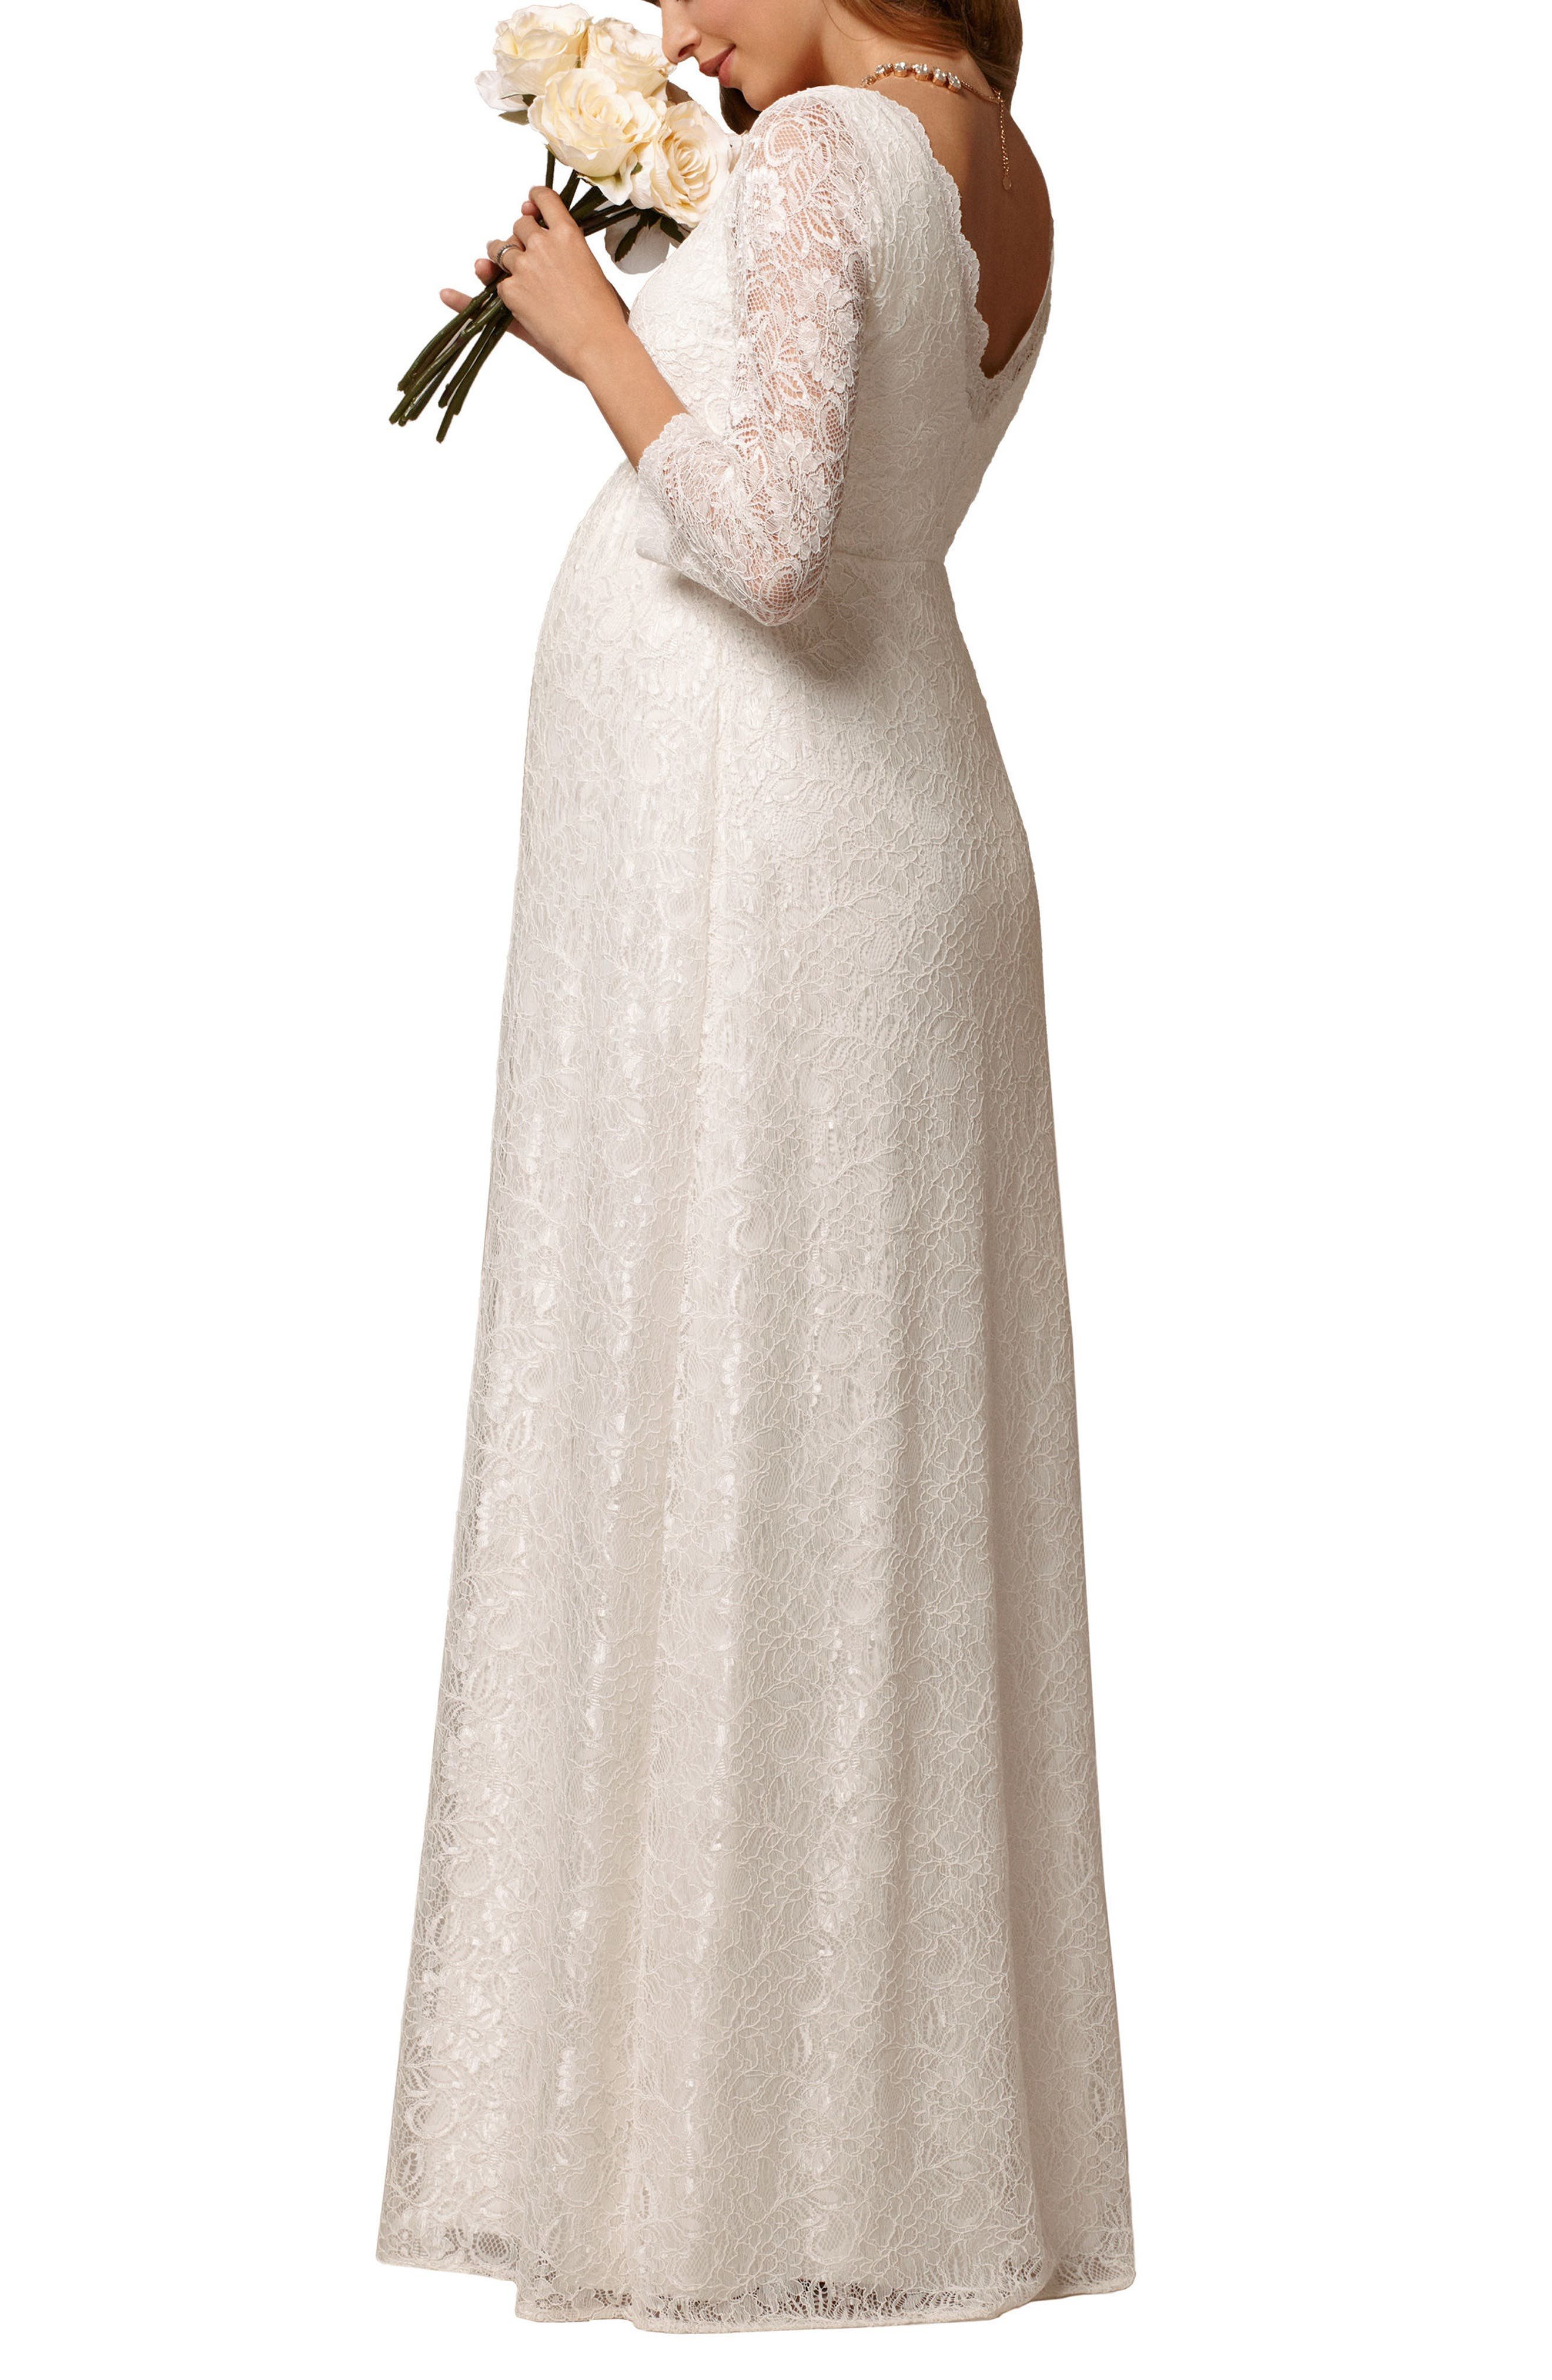 TIFFANY ROSE,                             Chloe Lace Maternity Gown,                             Alternate thumbnail 2, color,                             IVORY